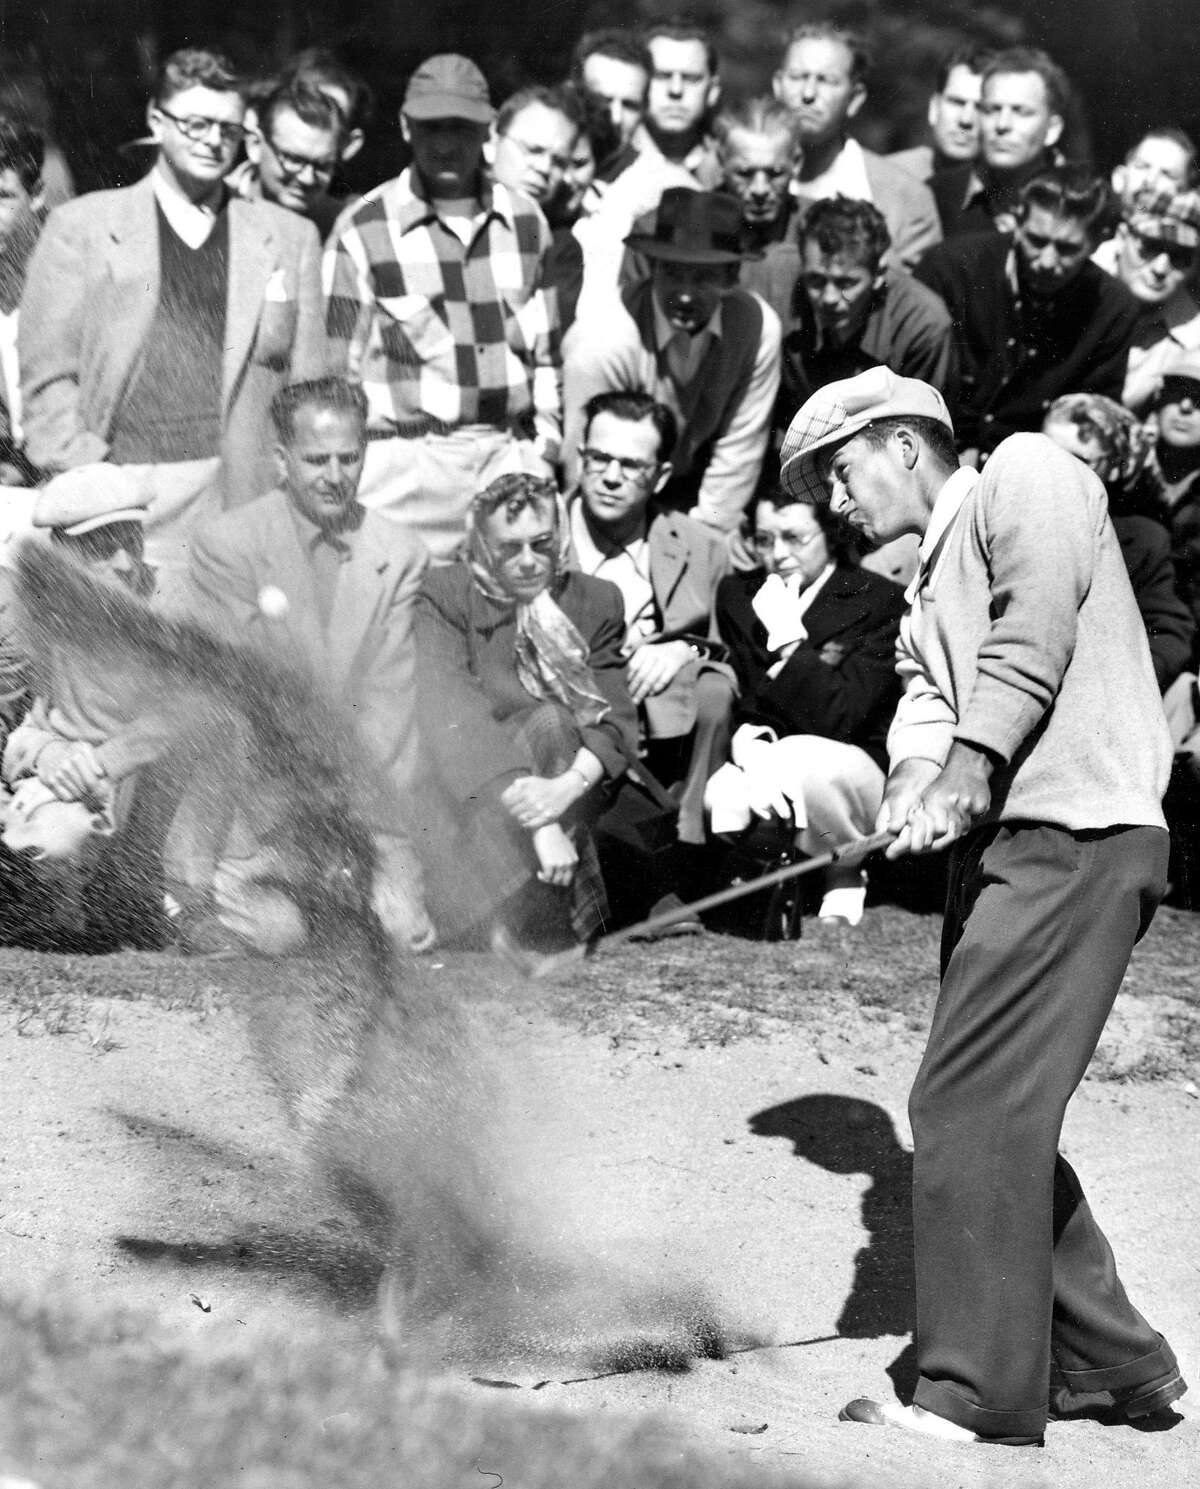 Ken Venturi in a sand trap of the 8th hole at Harding at the San Francisco City Golf Championships 1953, which Venturi would win Photo ran 3/30/1953